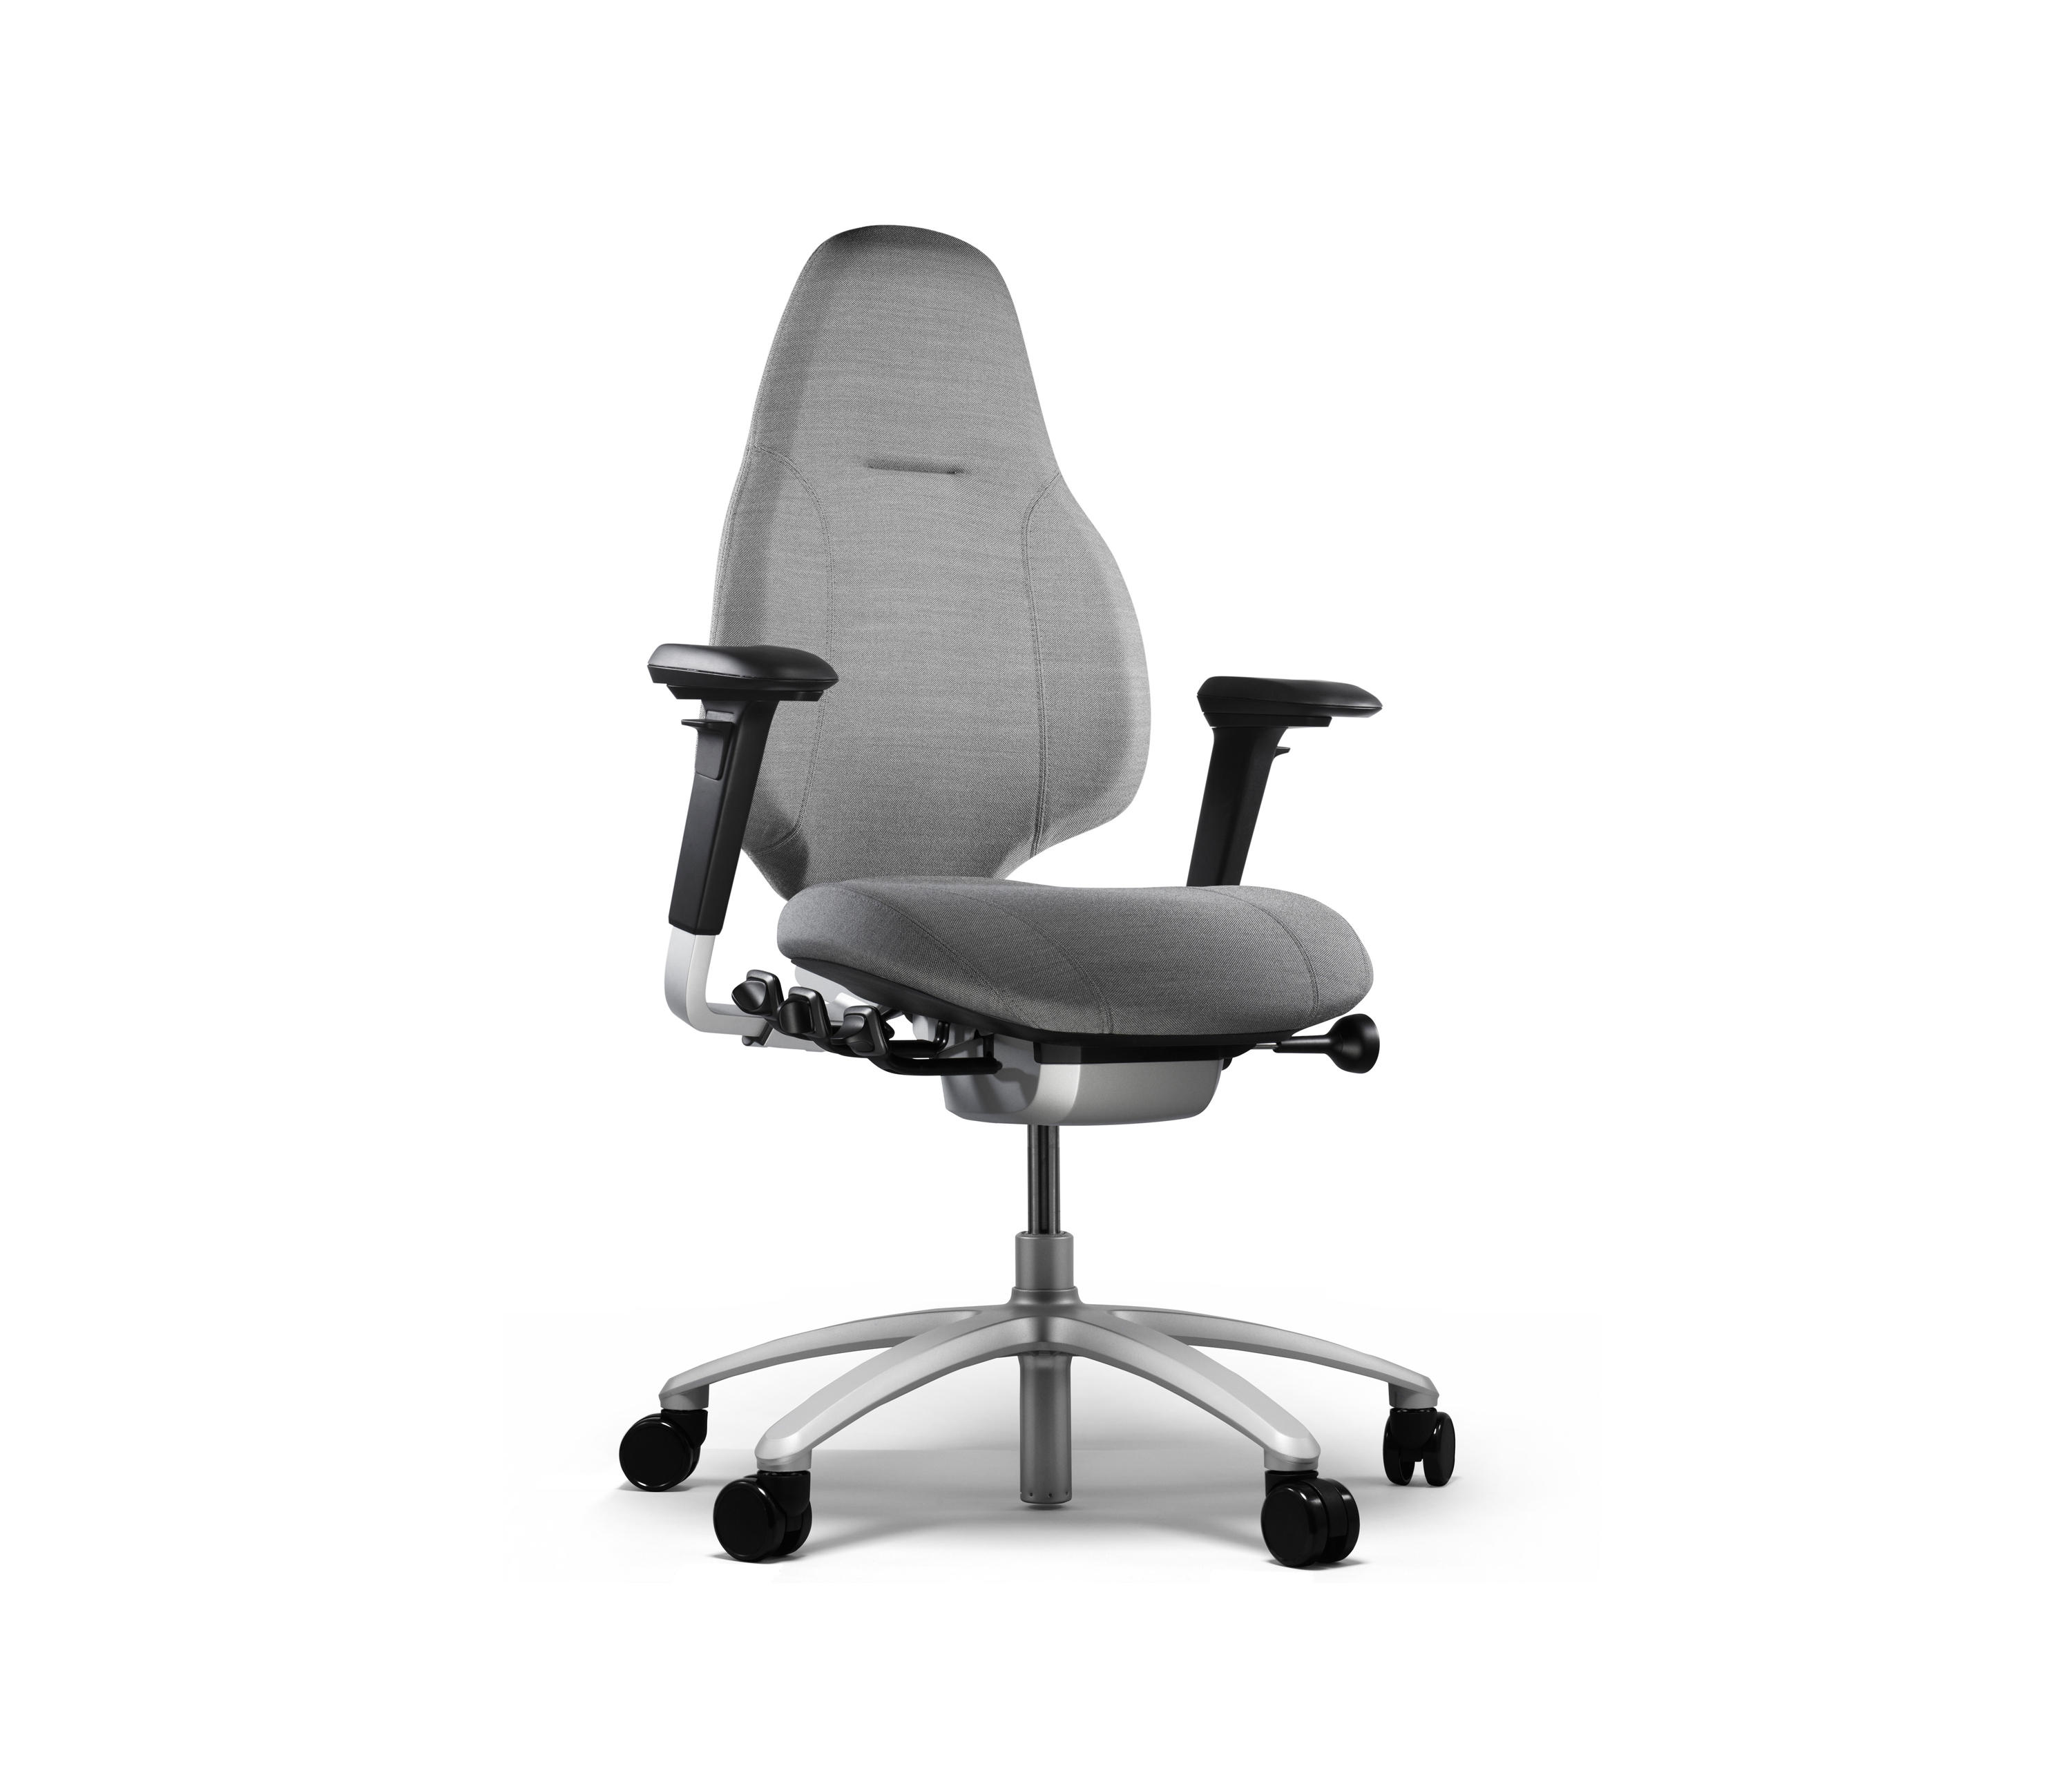 ... RH Mereo 220 By Flokk | Office Chairs